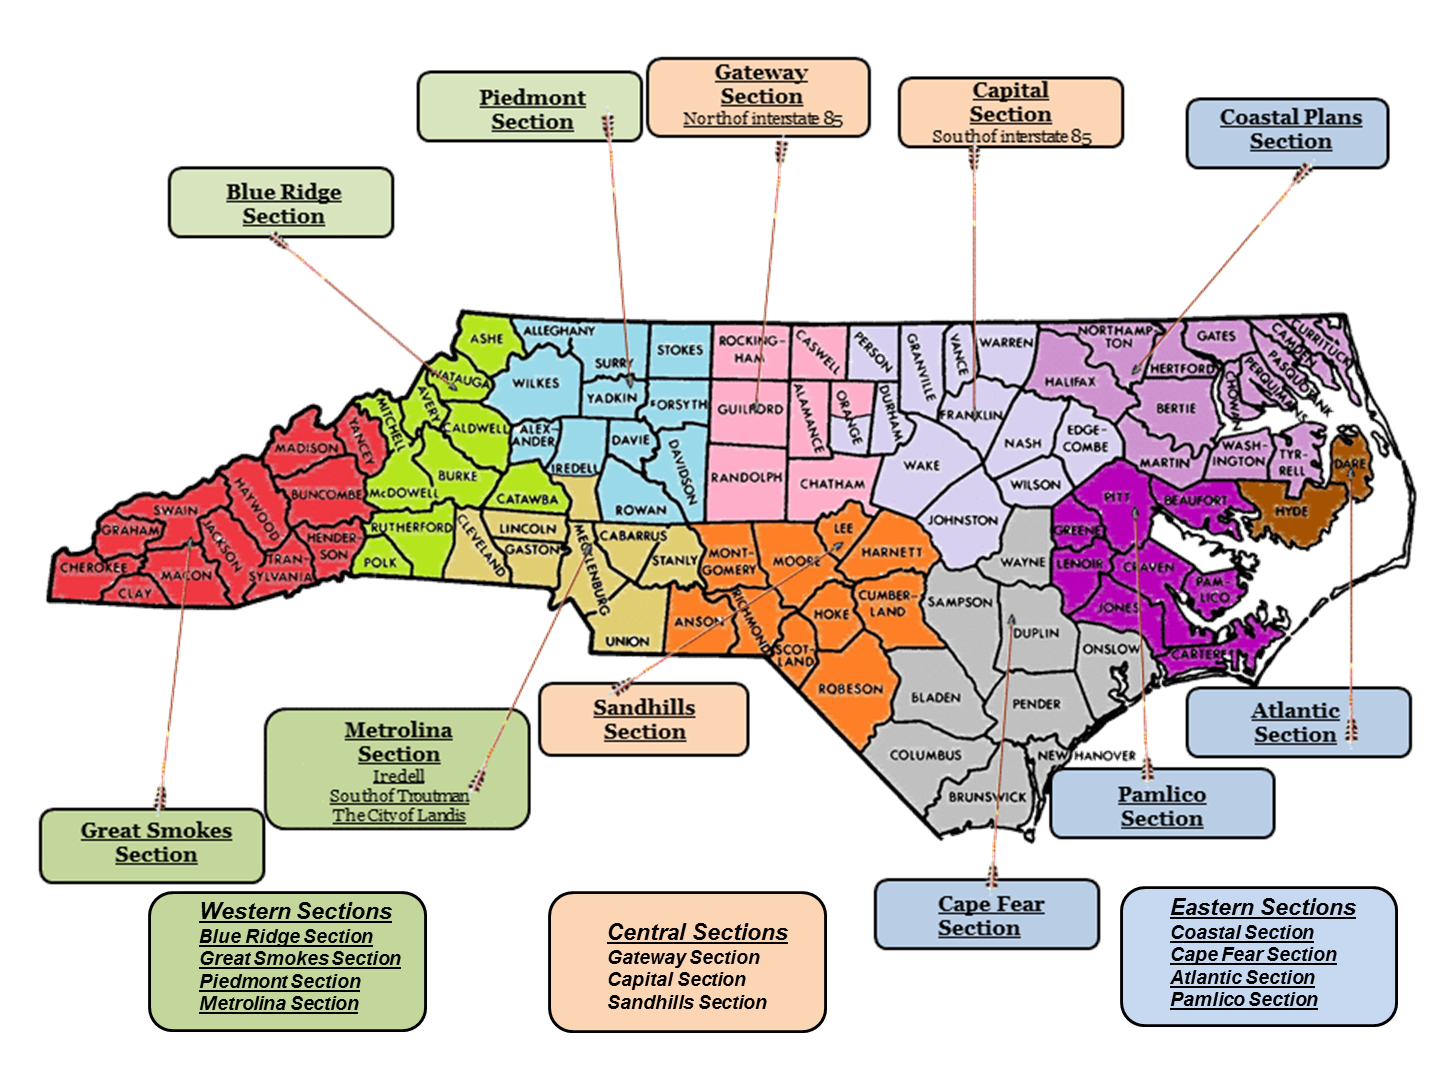 NC Sections